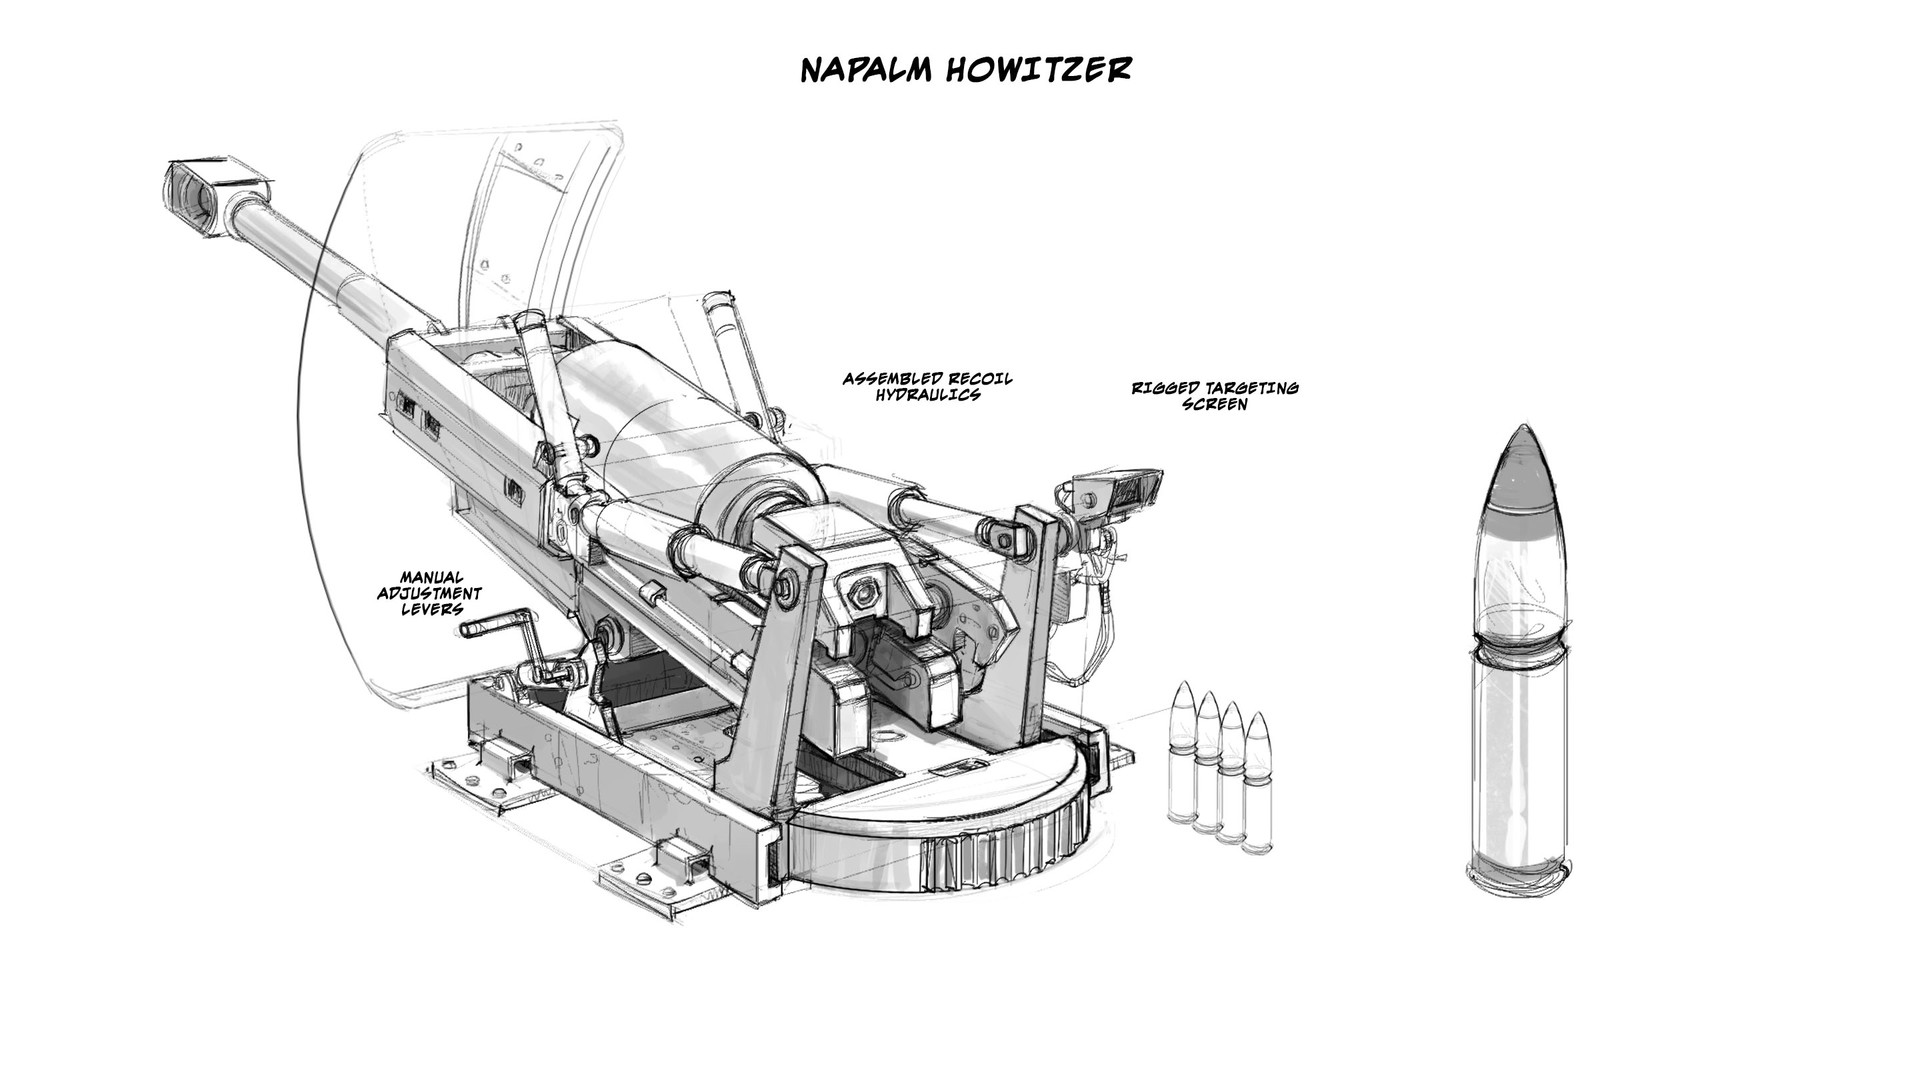 Refitted howitzer sketch